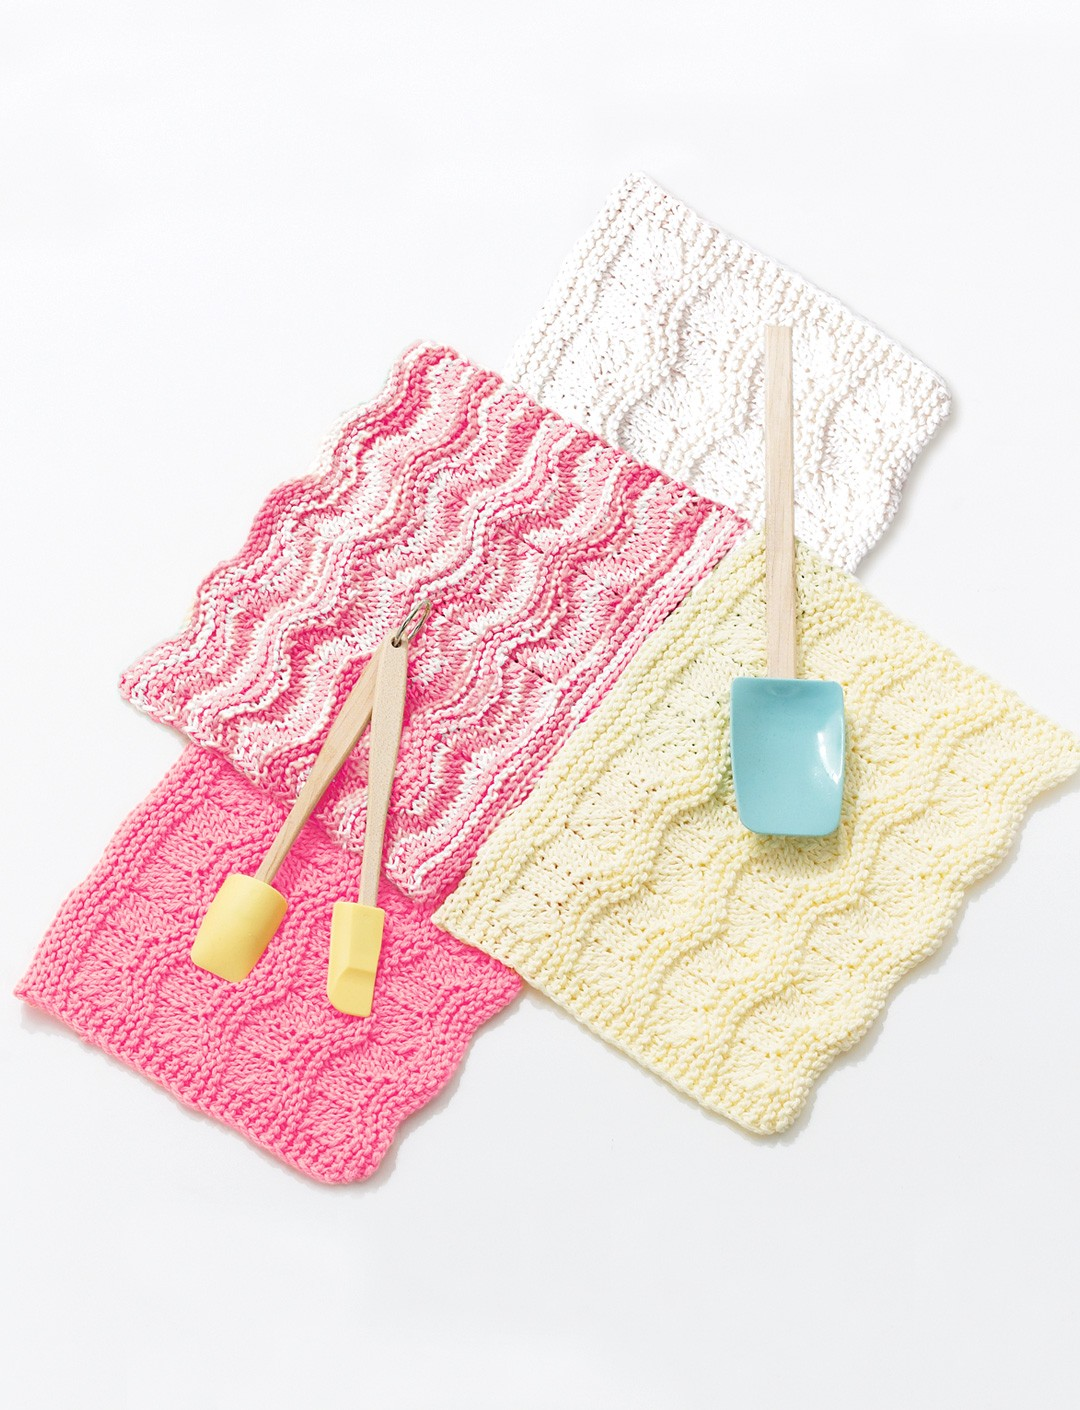 Rippled Dish Cloth